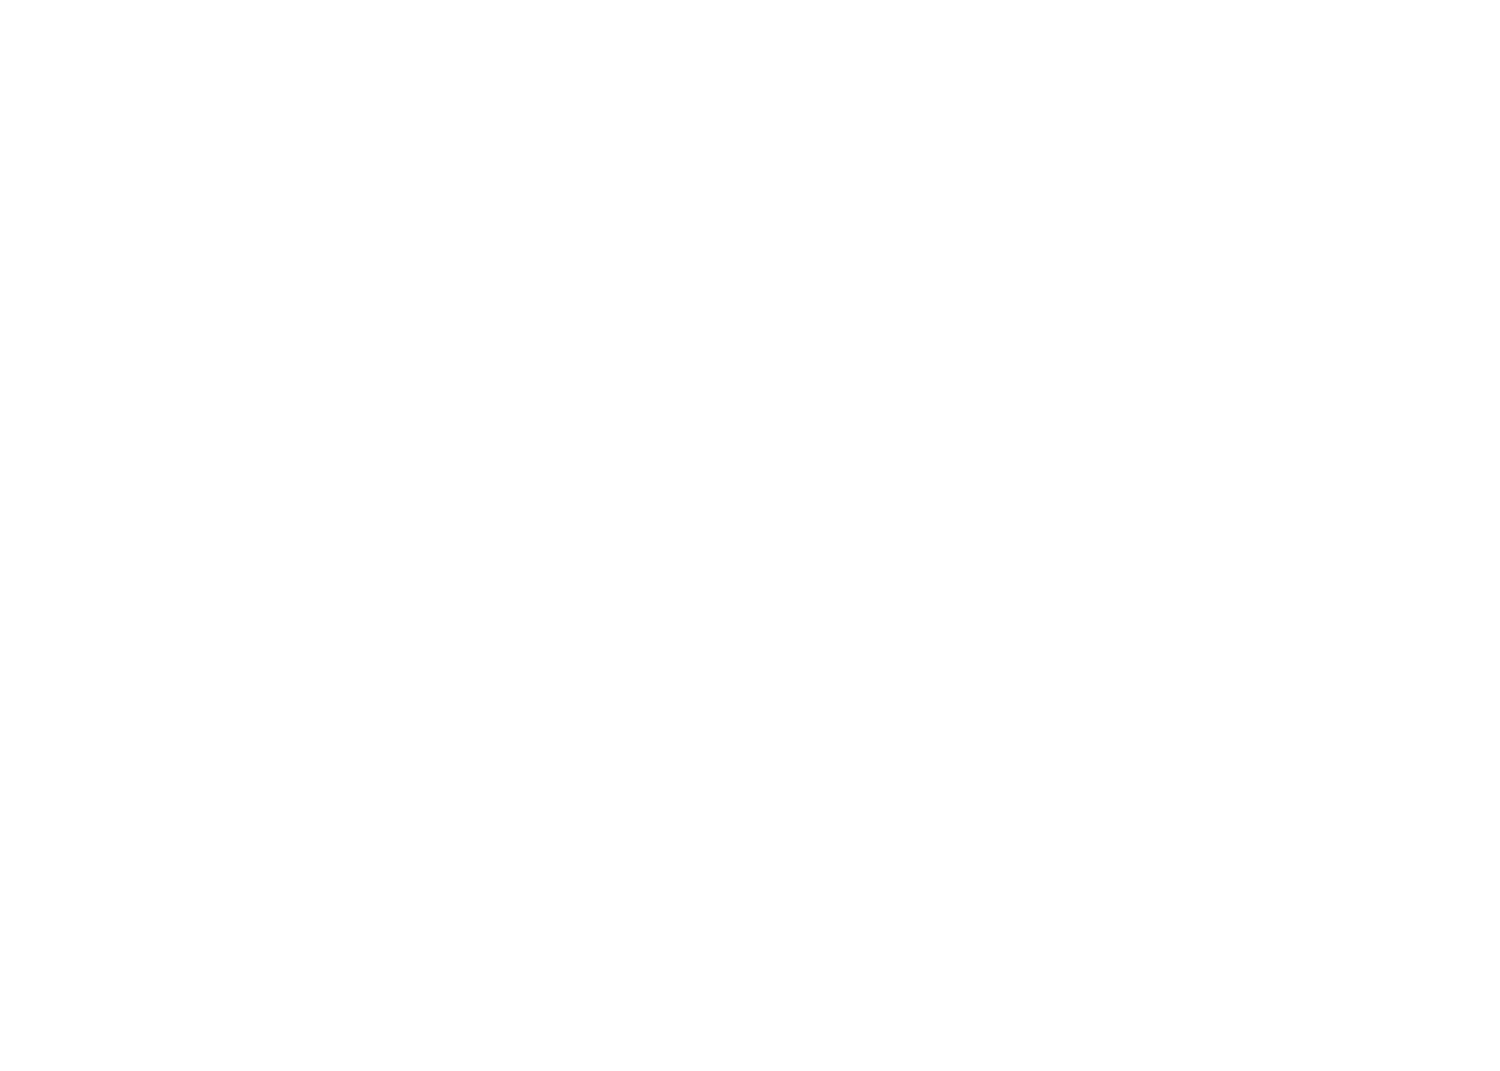 Tall Firs Cinema